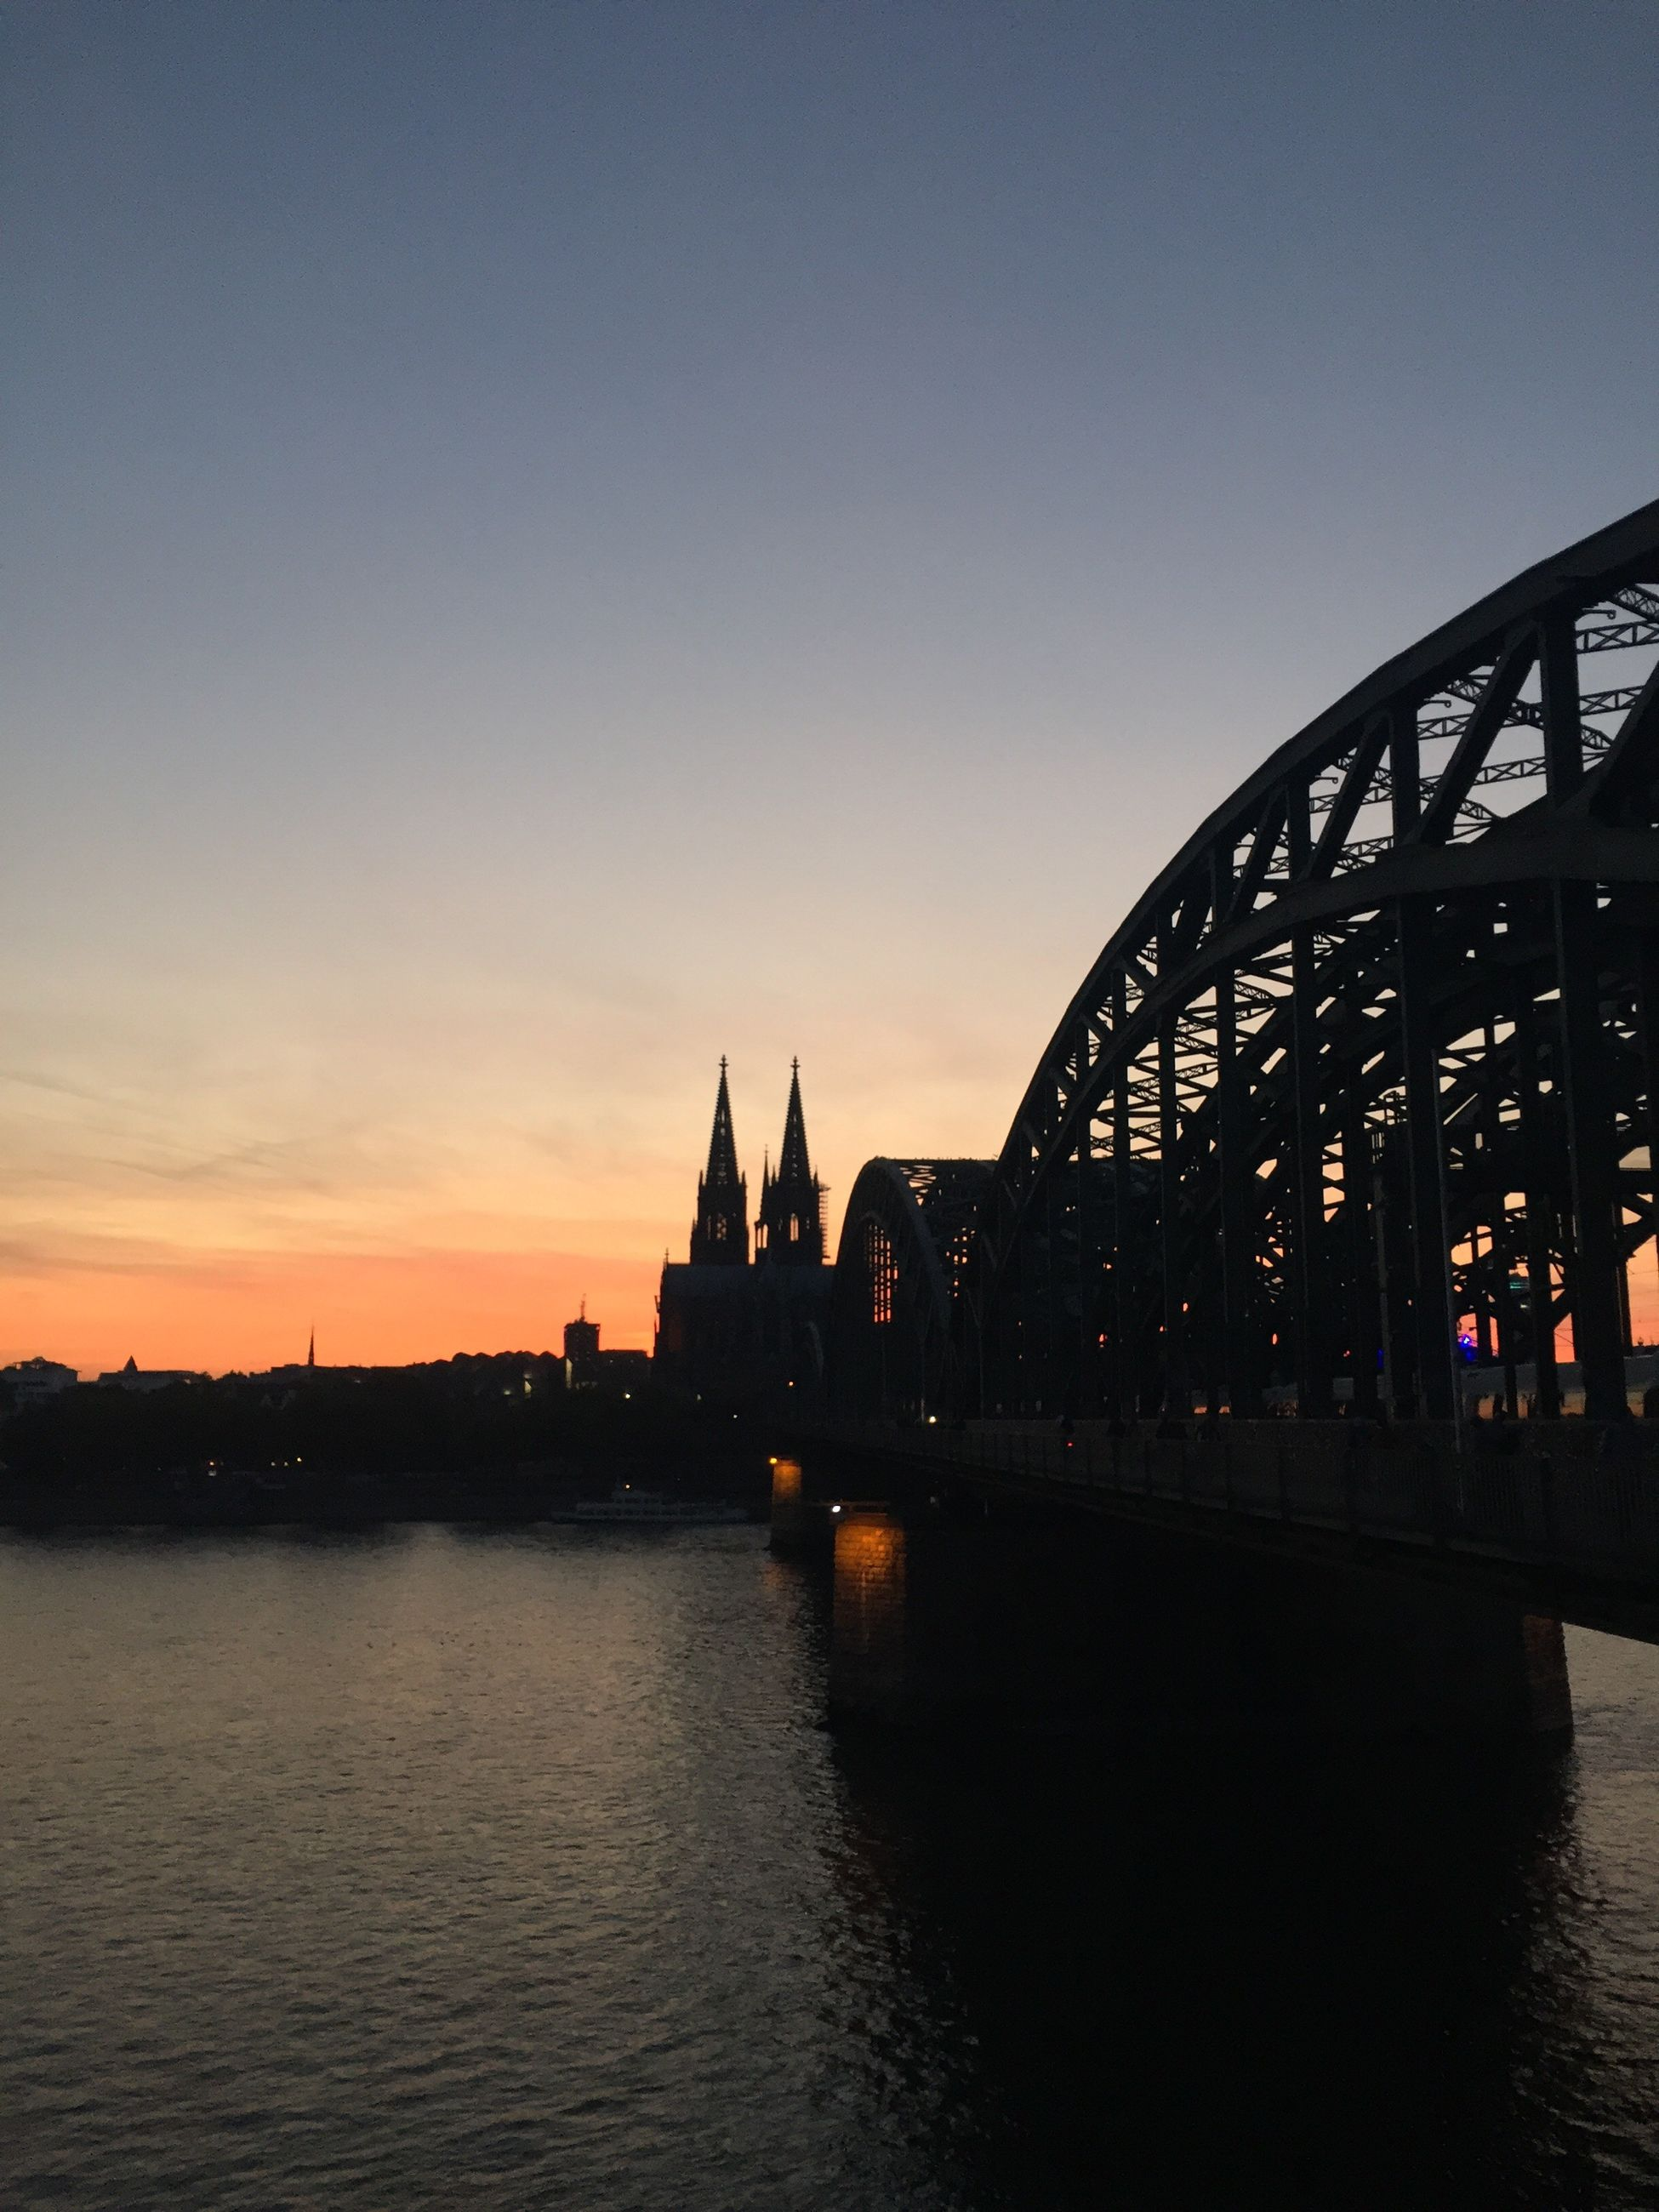 built structure, architecture, building exterior, travel destinations, tourism, silhouette, water, famous place, waterfront, dusk, river, sunset, city, bridge - man made structure, travel, spirituality, international landmark, place of worship, capital cities, city life, outdoors, riverbank, engineering, church, sydney harbor bridge, sky, spire, vacations, outline